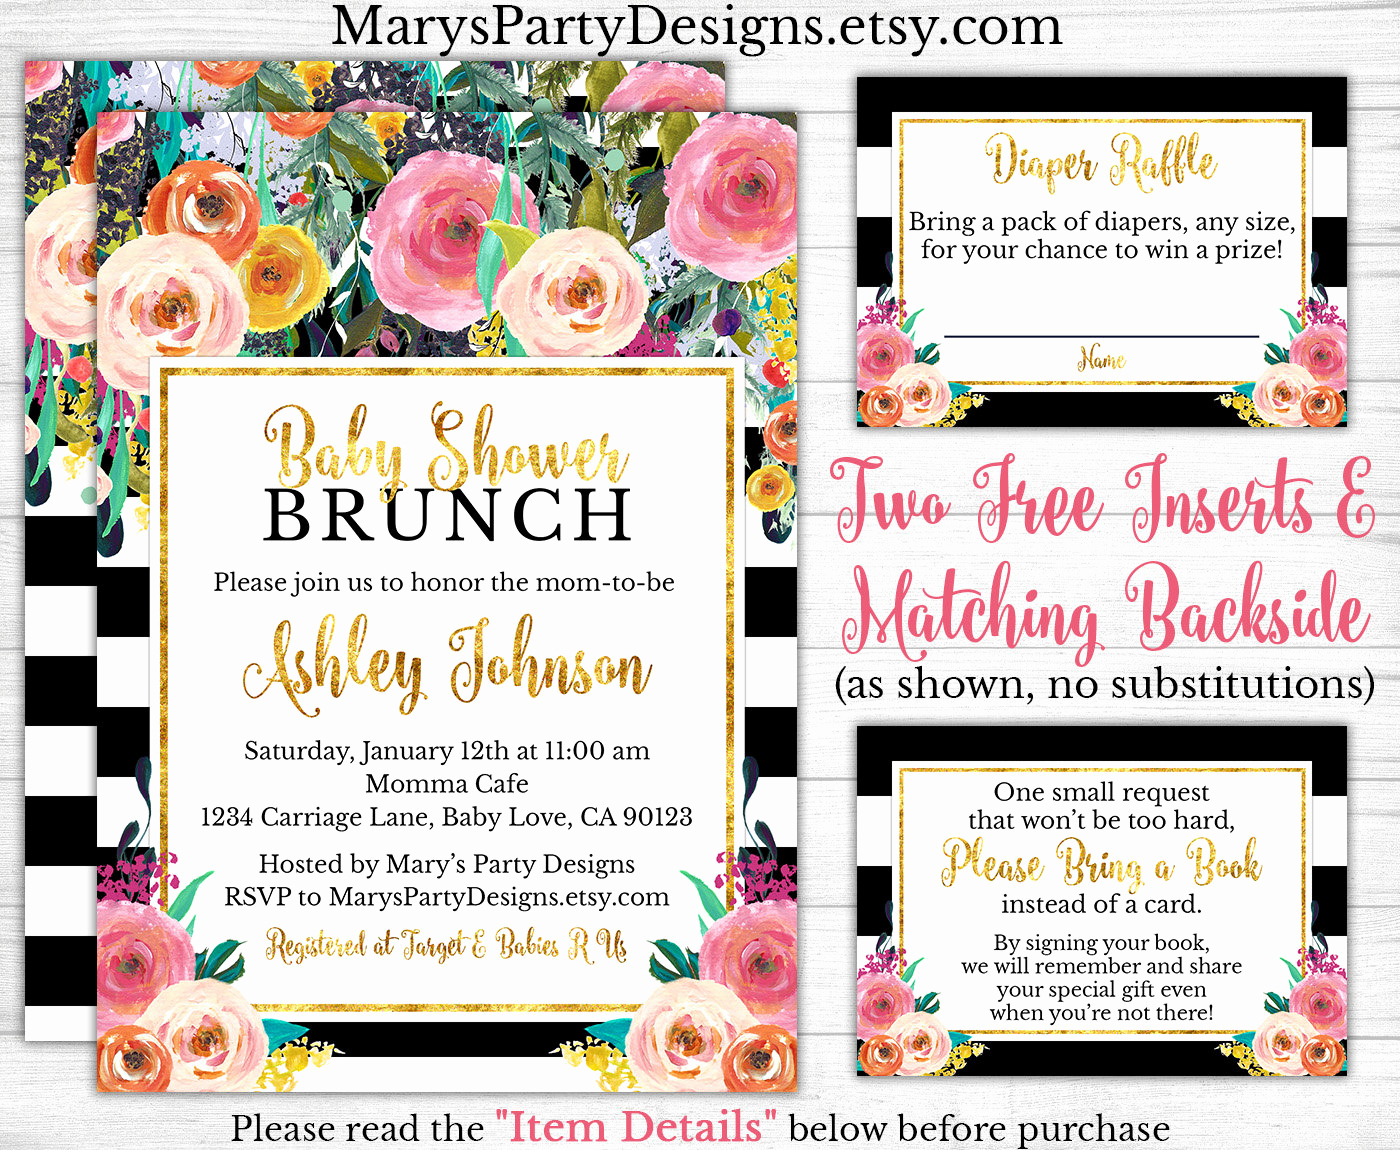 Baby Shower Brunch Invitation Elegant Brunch Baby Shower Invitation Watercolor Flowers Floral Pink